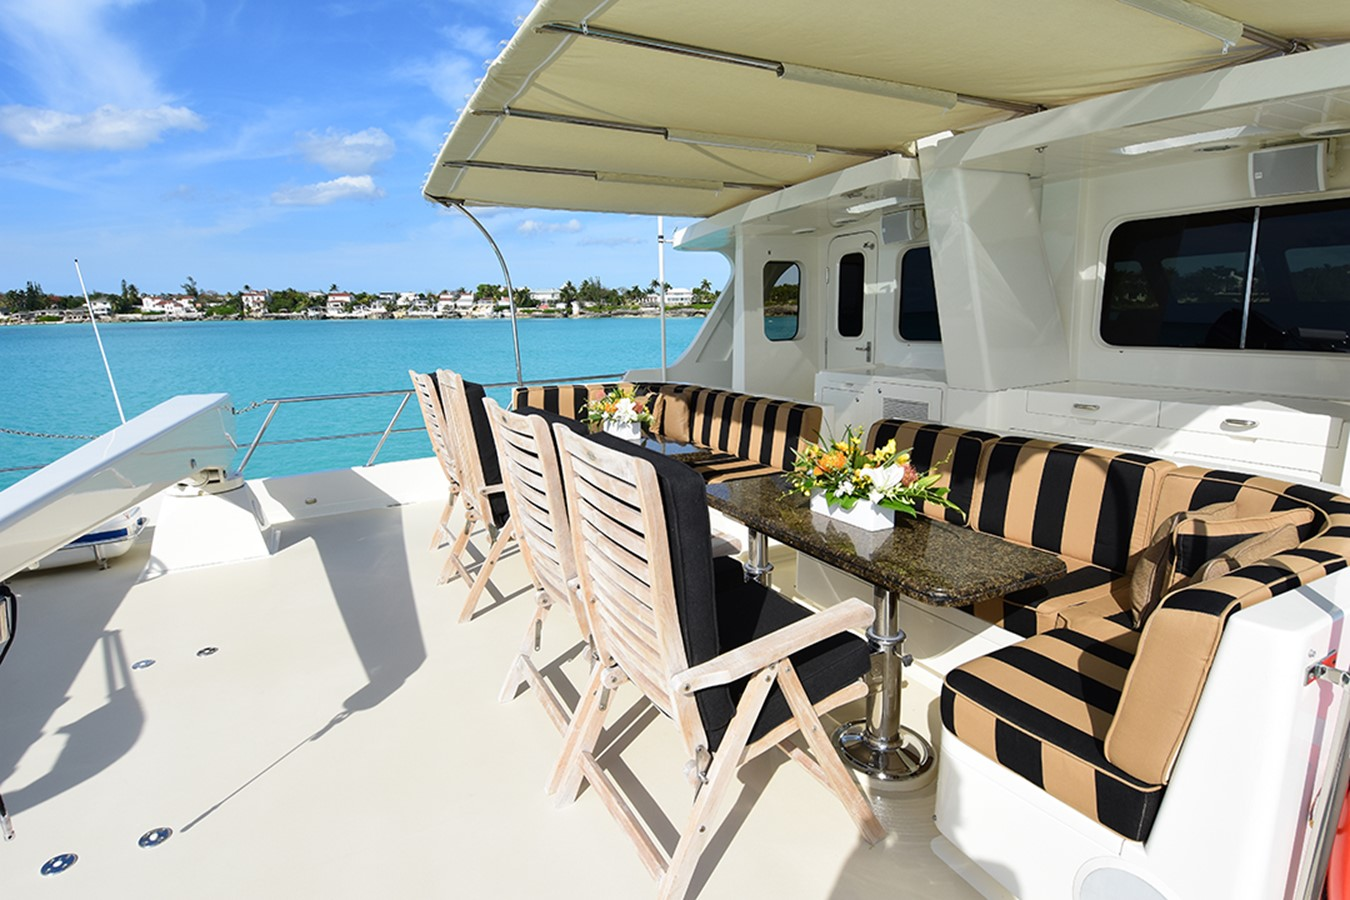 Boat Deck 2007 OFFSHORE YACHTS Voyager Motor Yacht 2535018